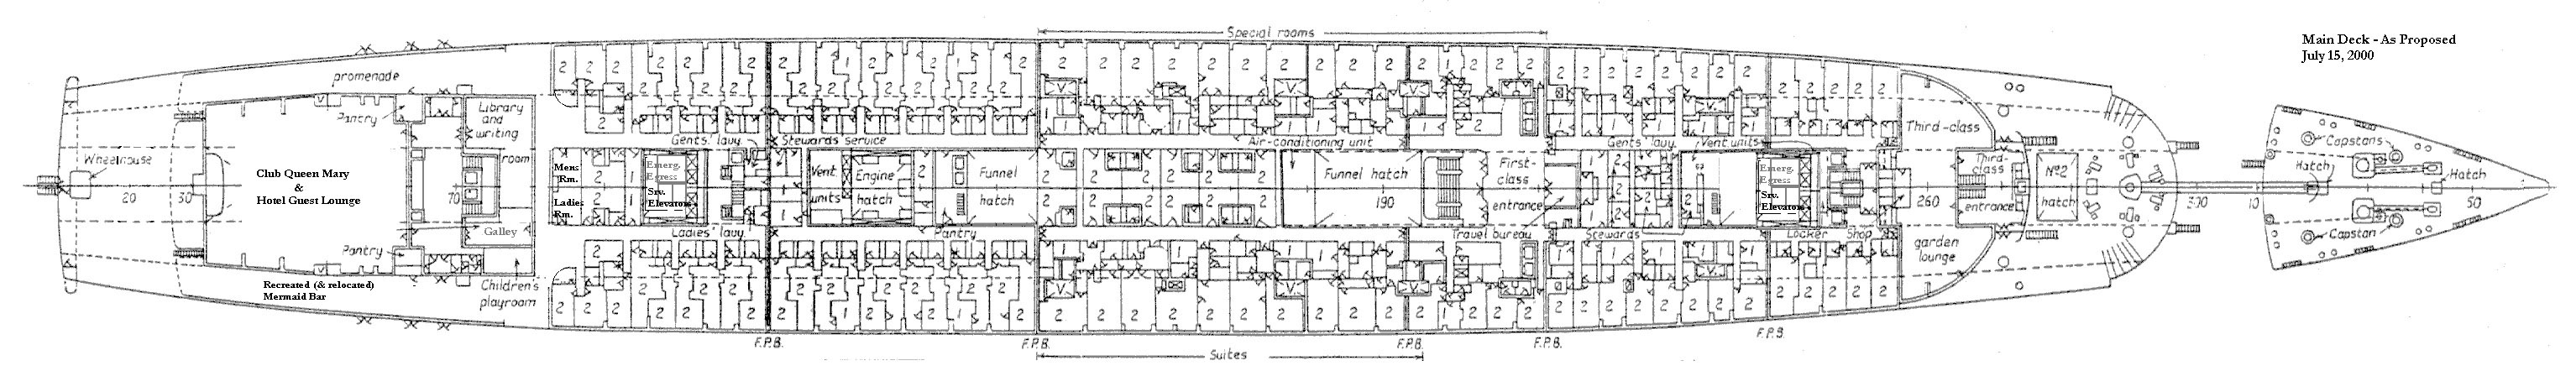 Queen Mary - Deck by Deck